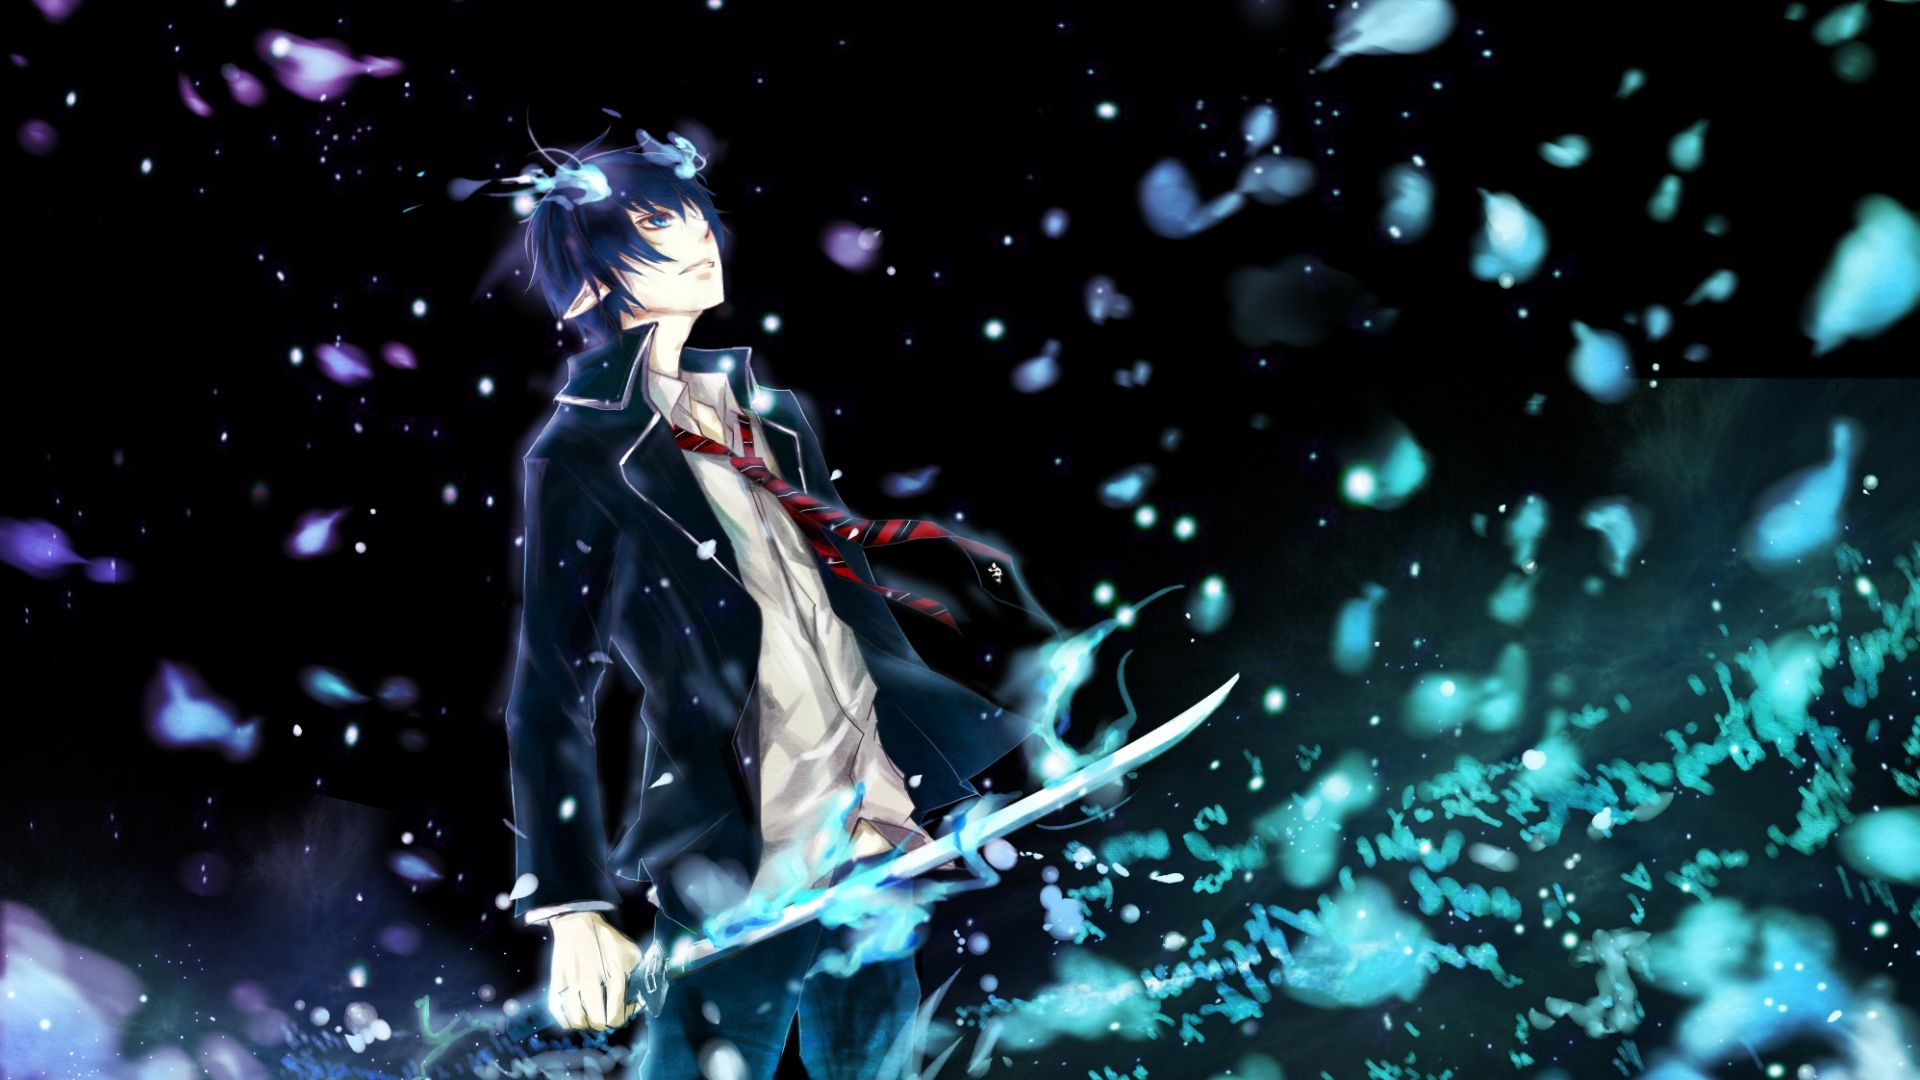 1920x1080 Wallpaper Ao No Exorcist Okumura Rin Man Art Wap